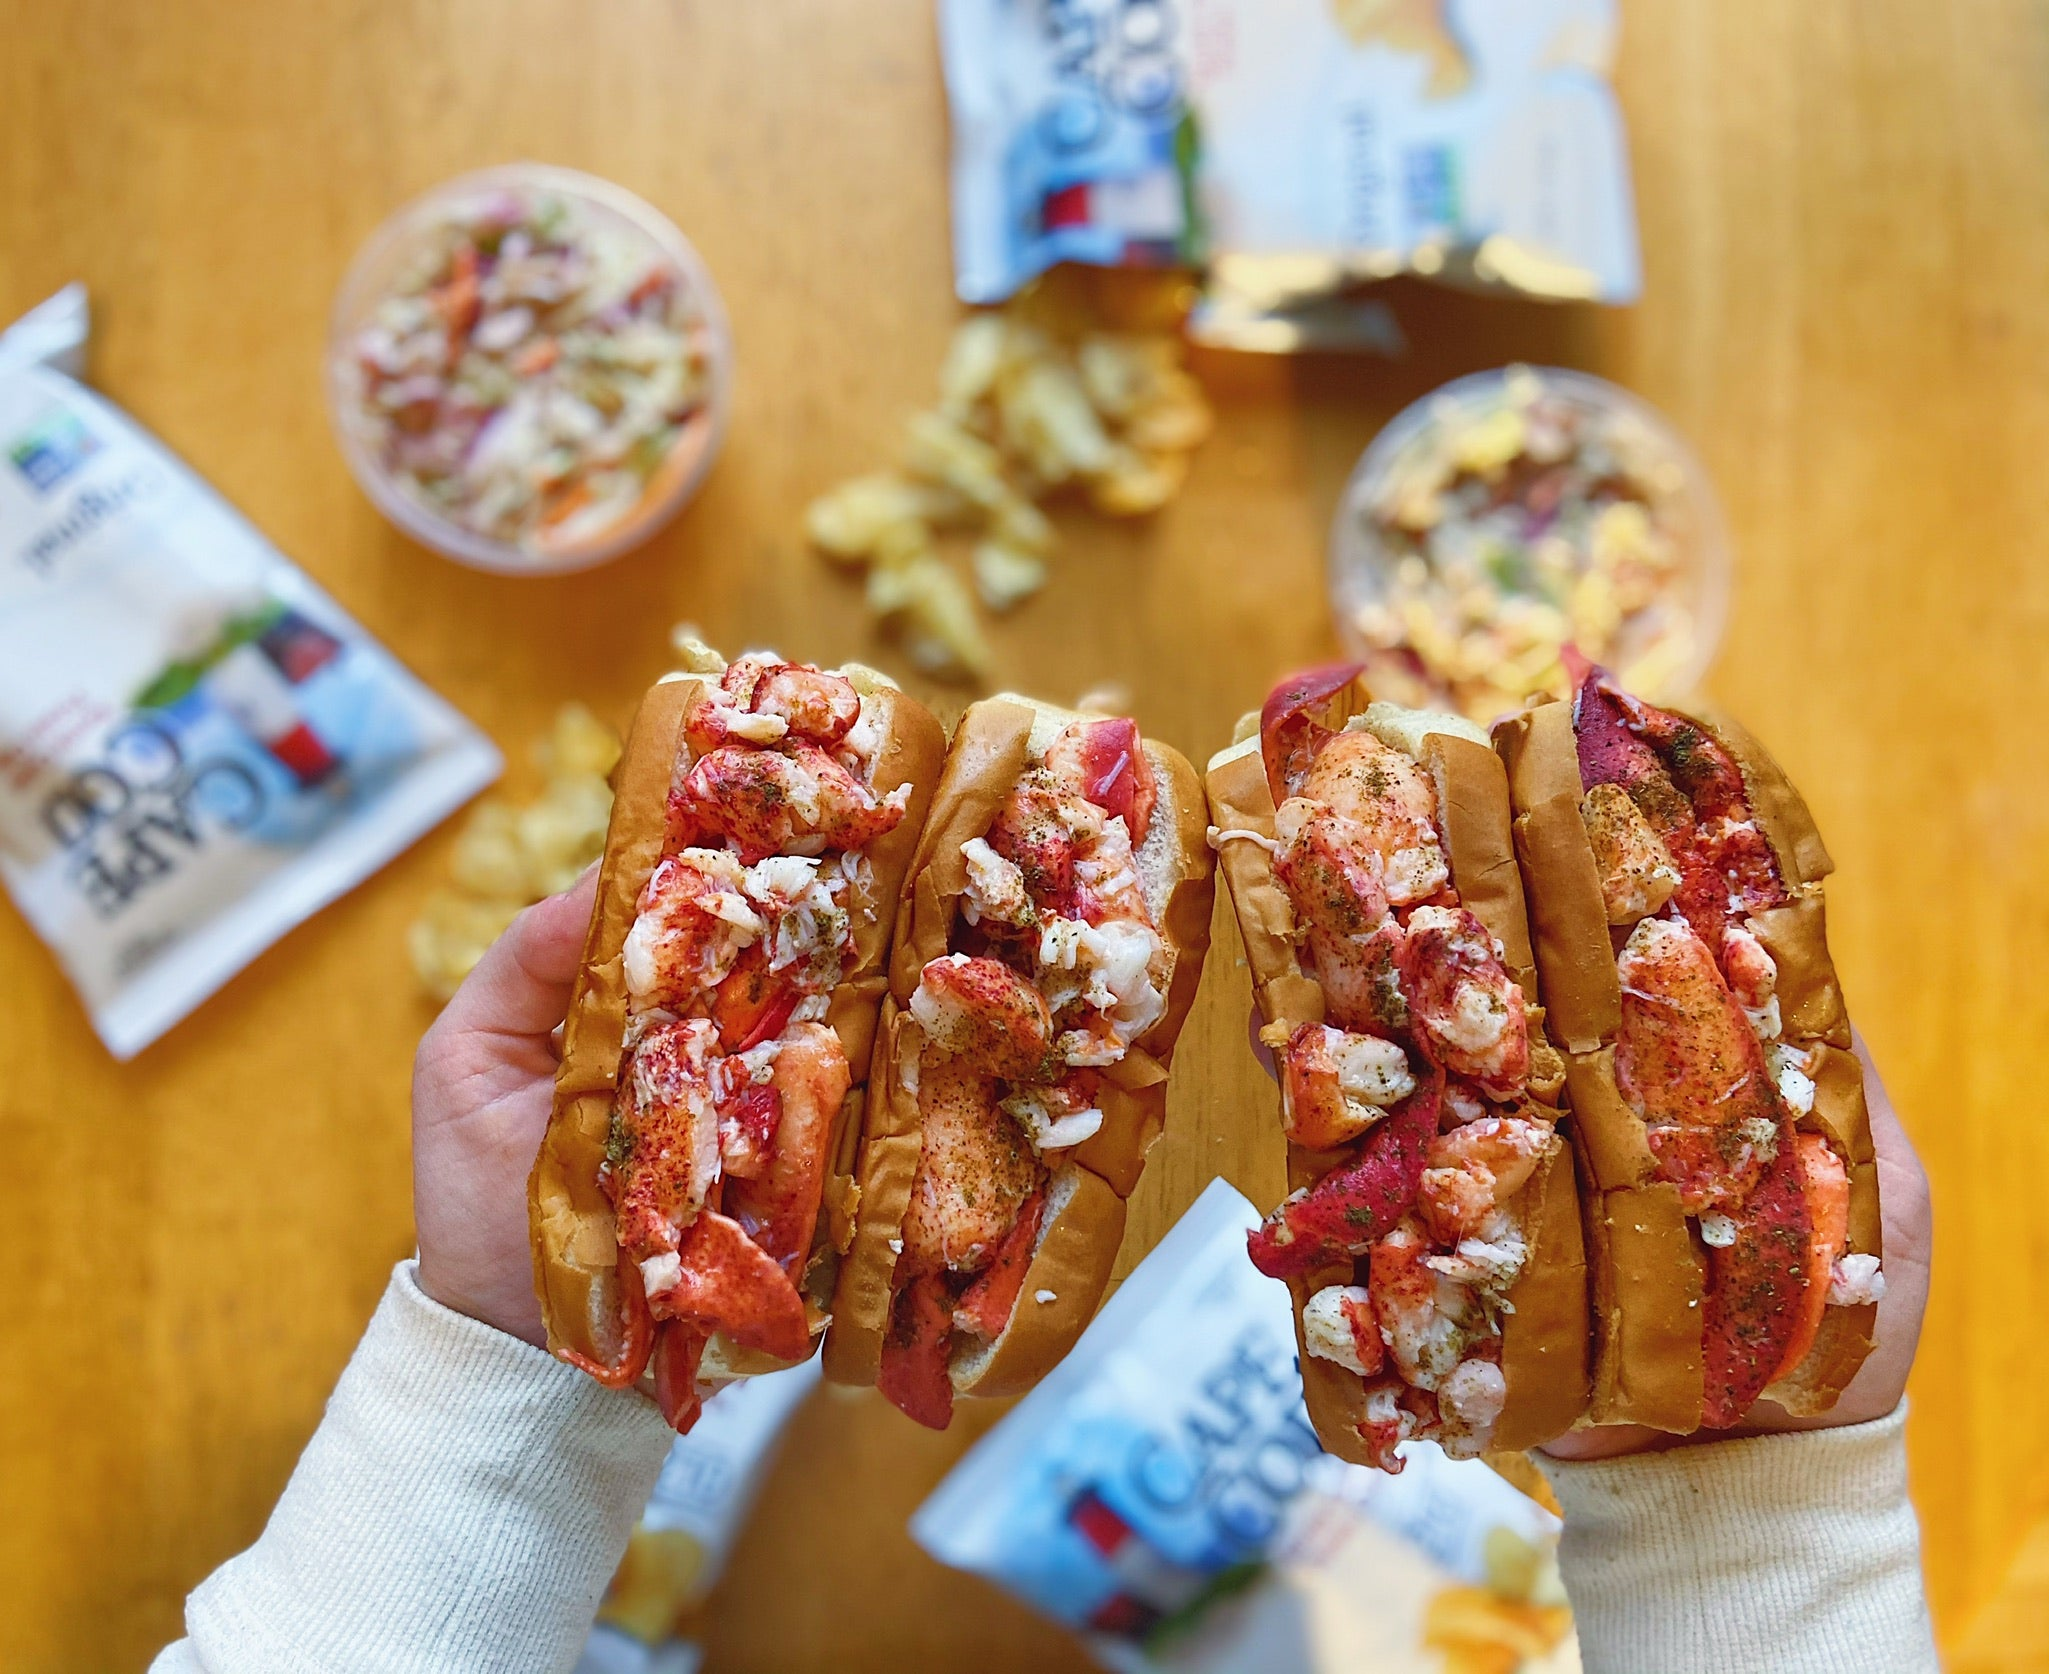 4 lobster rolls with chips and drink